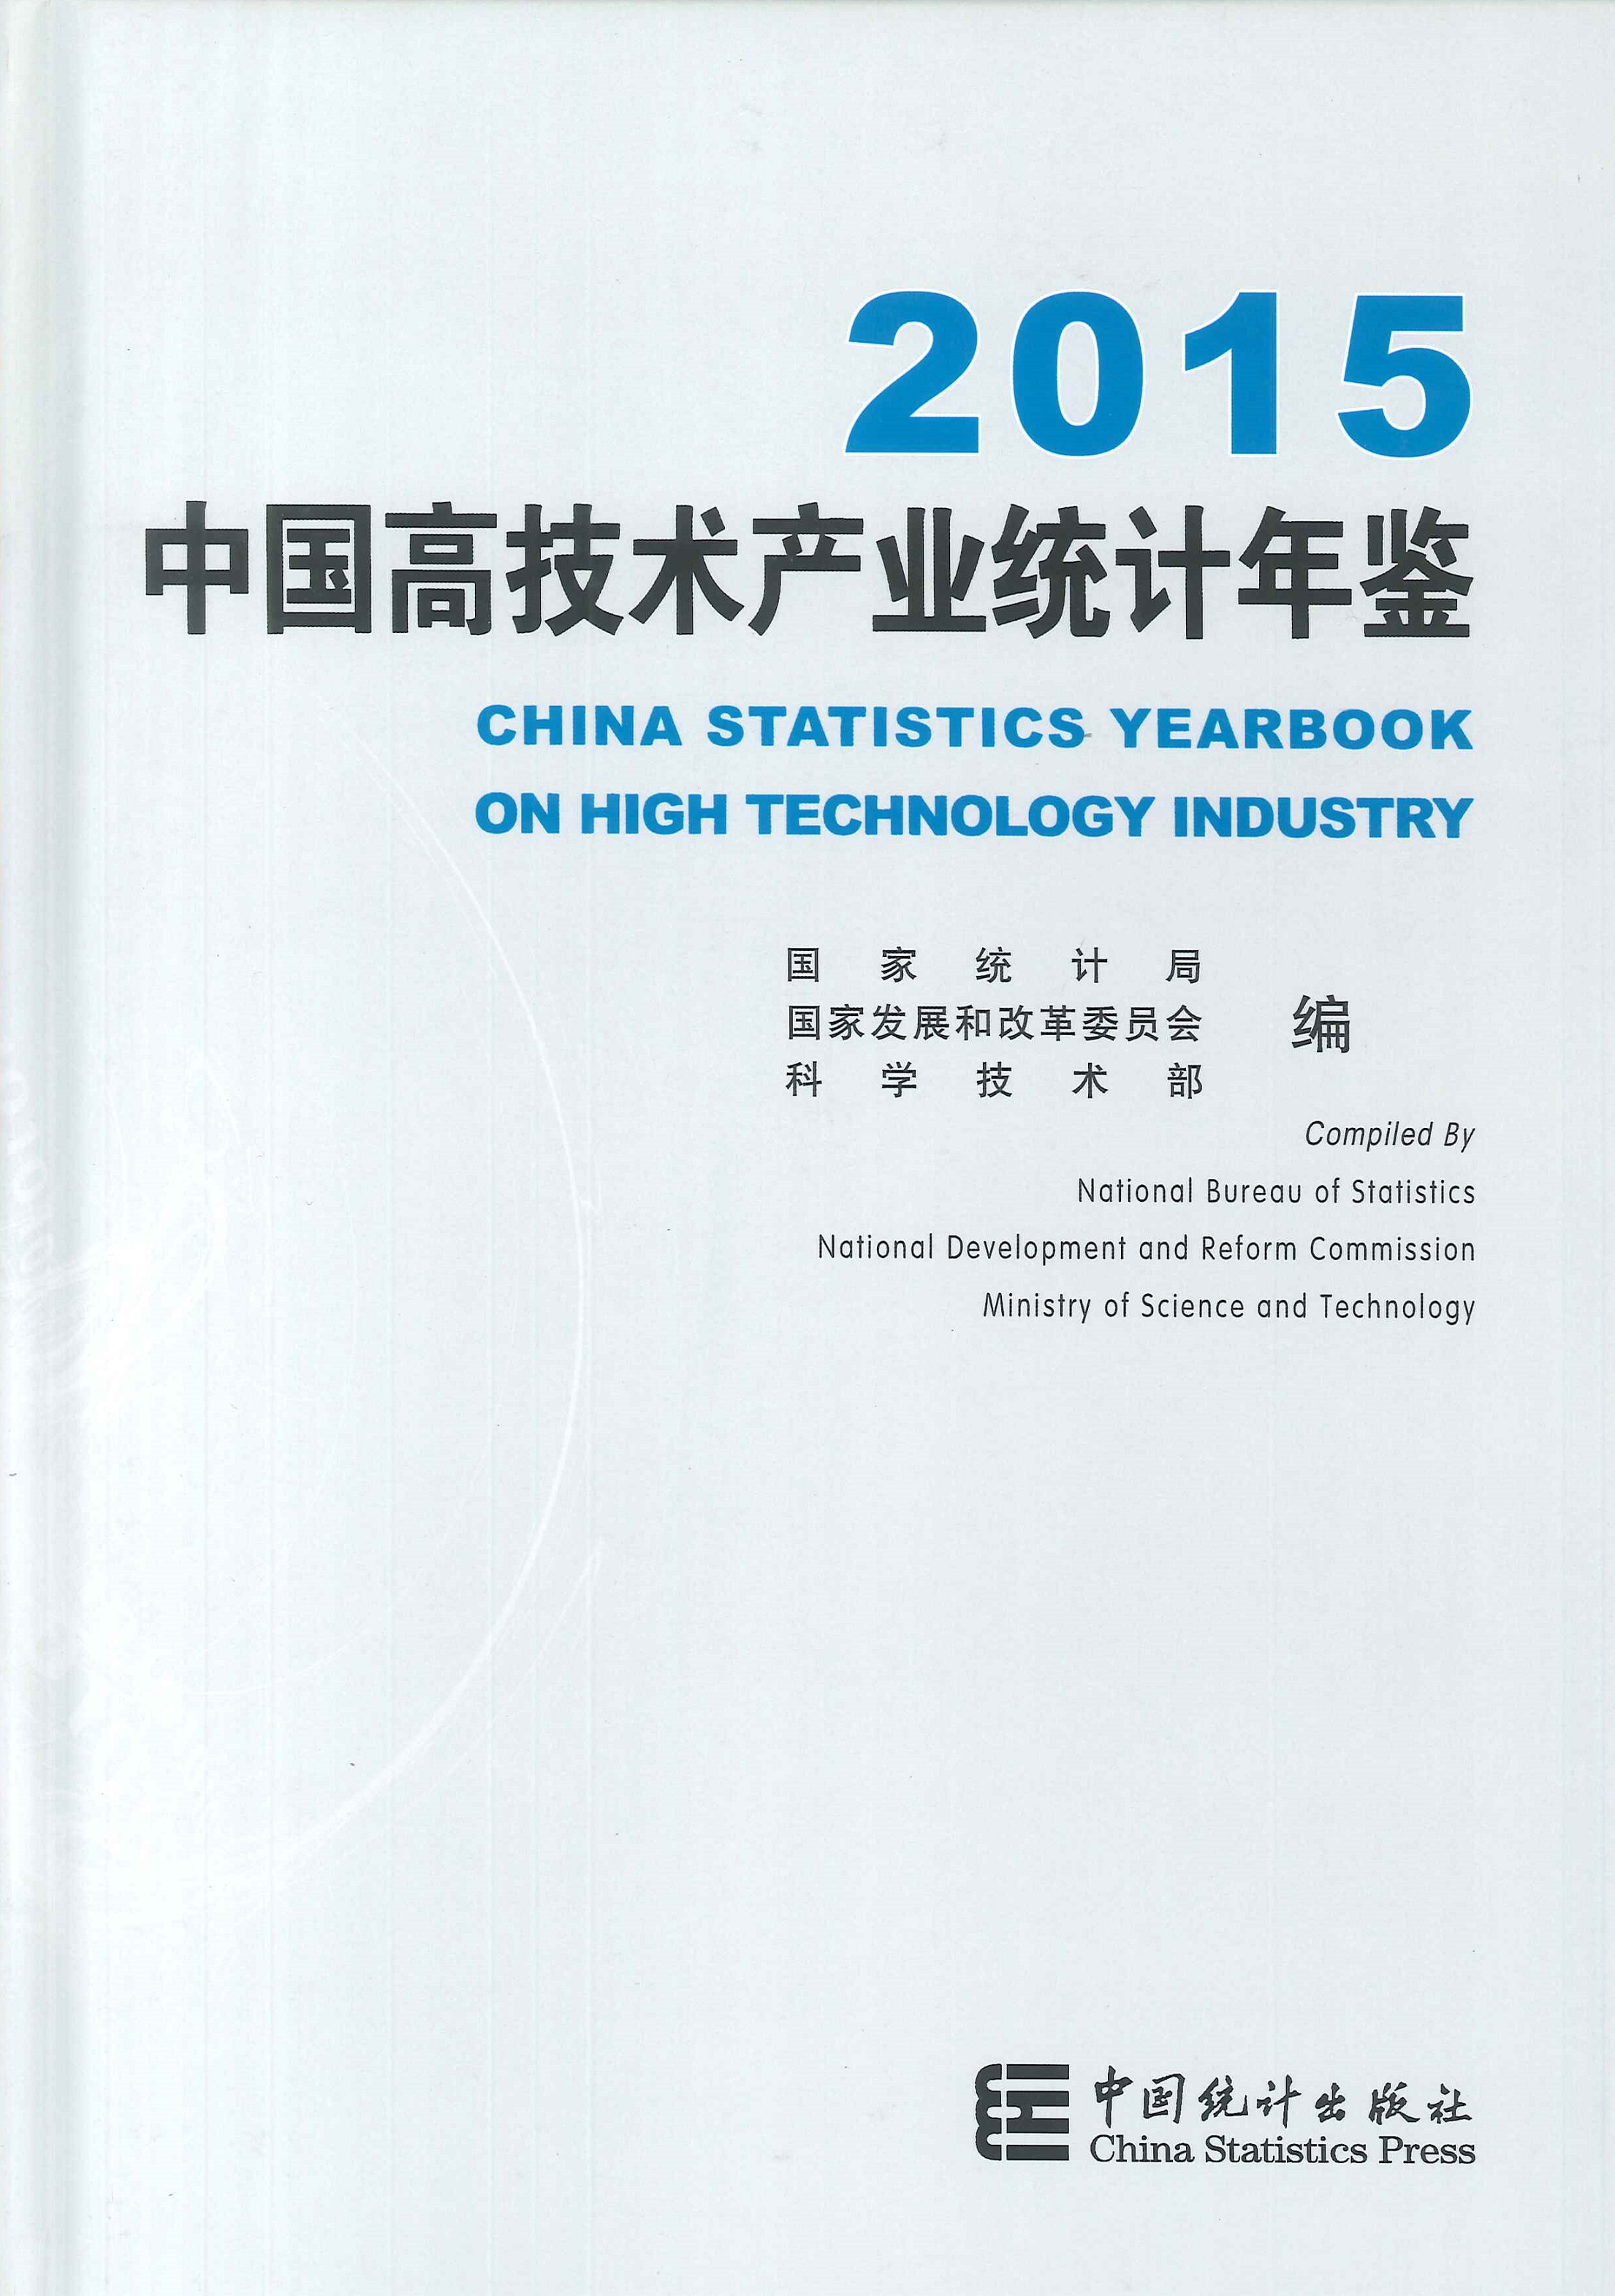 中国高技术产业统计年鉴=China statistics yearbook on high technology industry